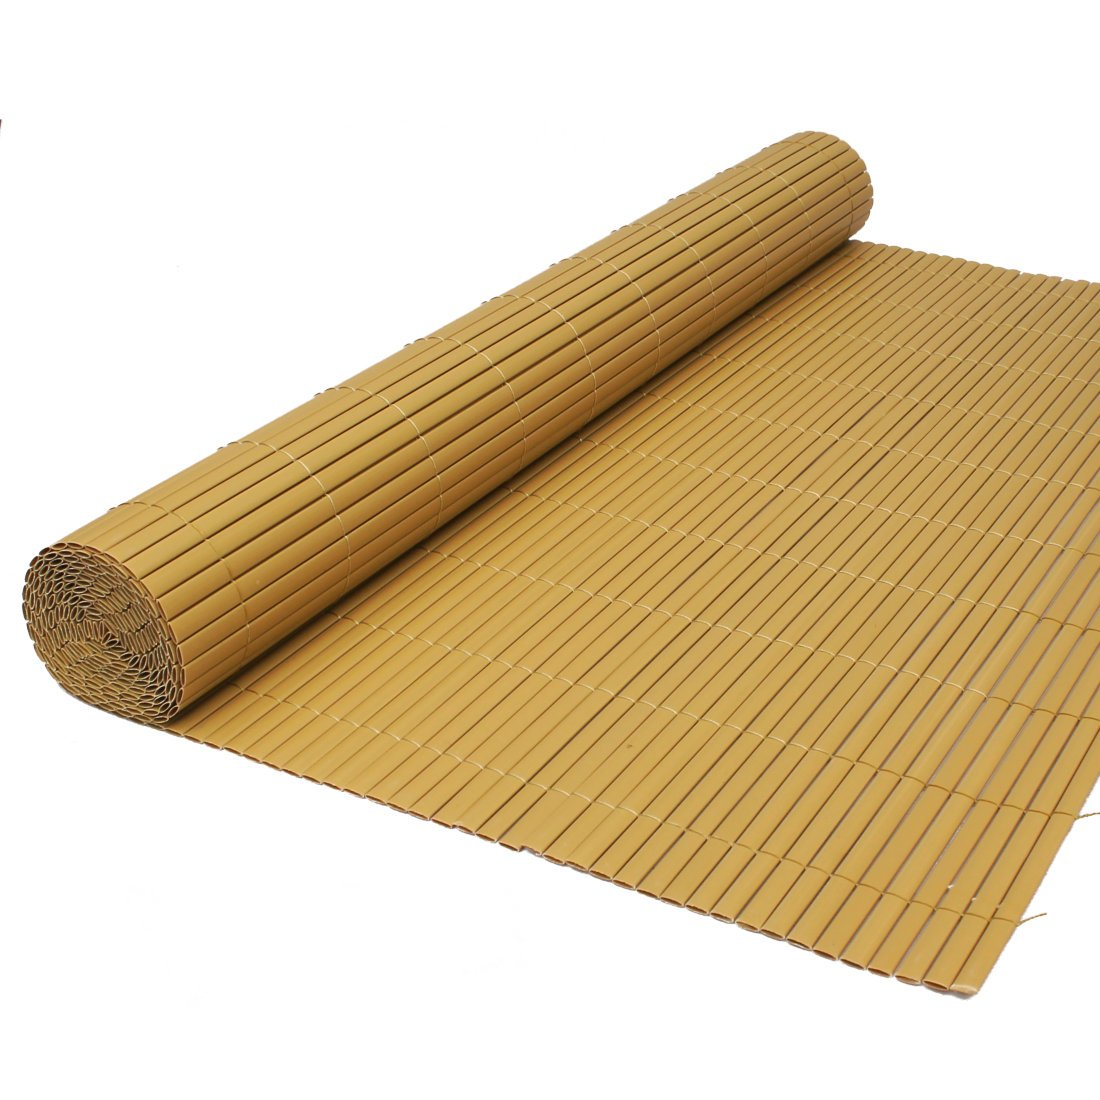 Artificial Bamboo Cane Two Sided Garden Fence Roll Privacy Screening 1m High x 4m Long by True Products